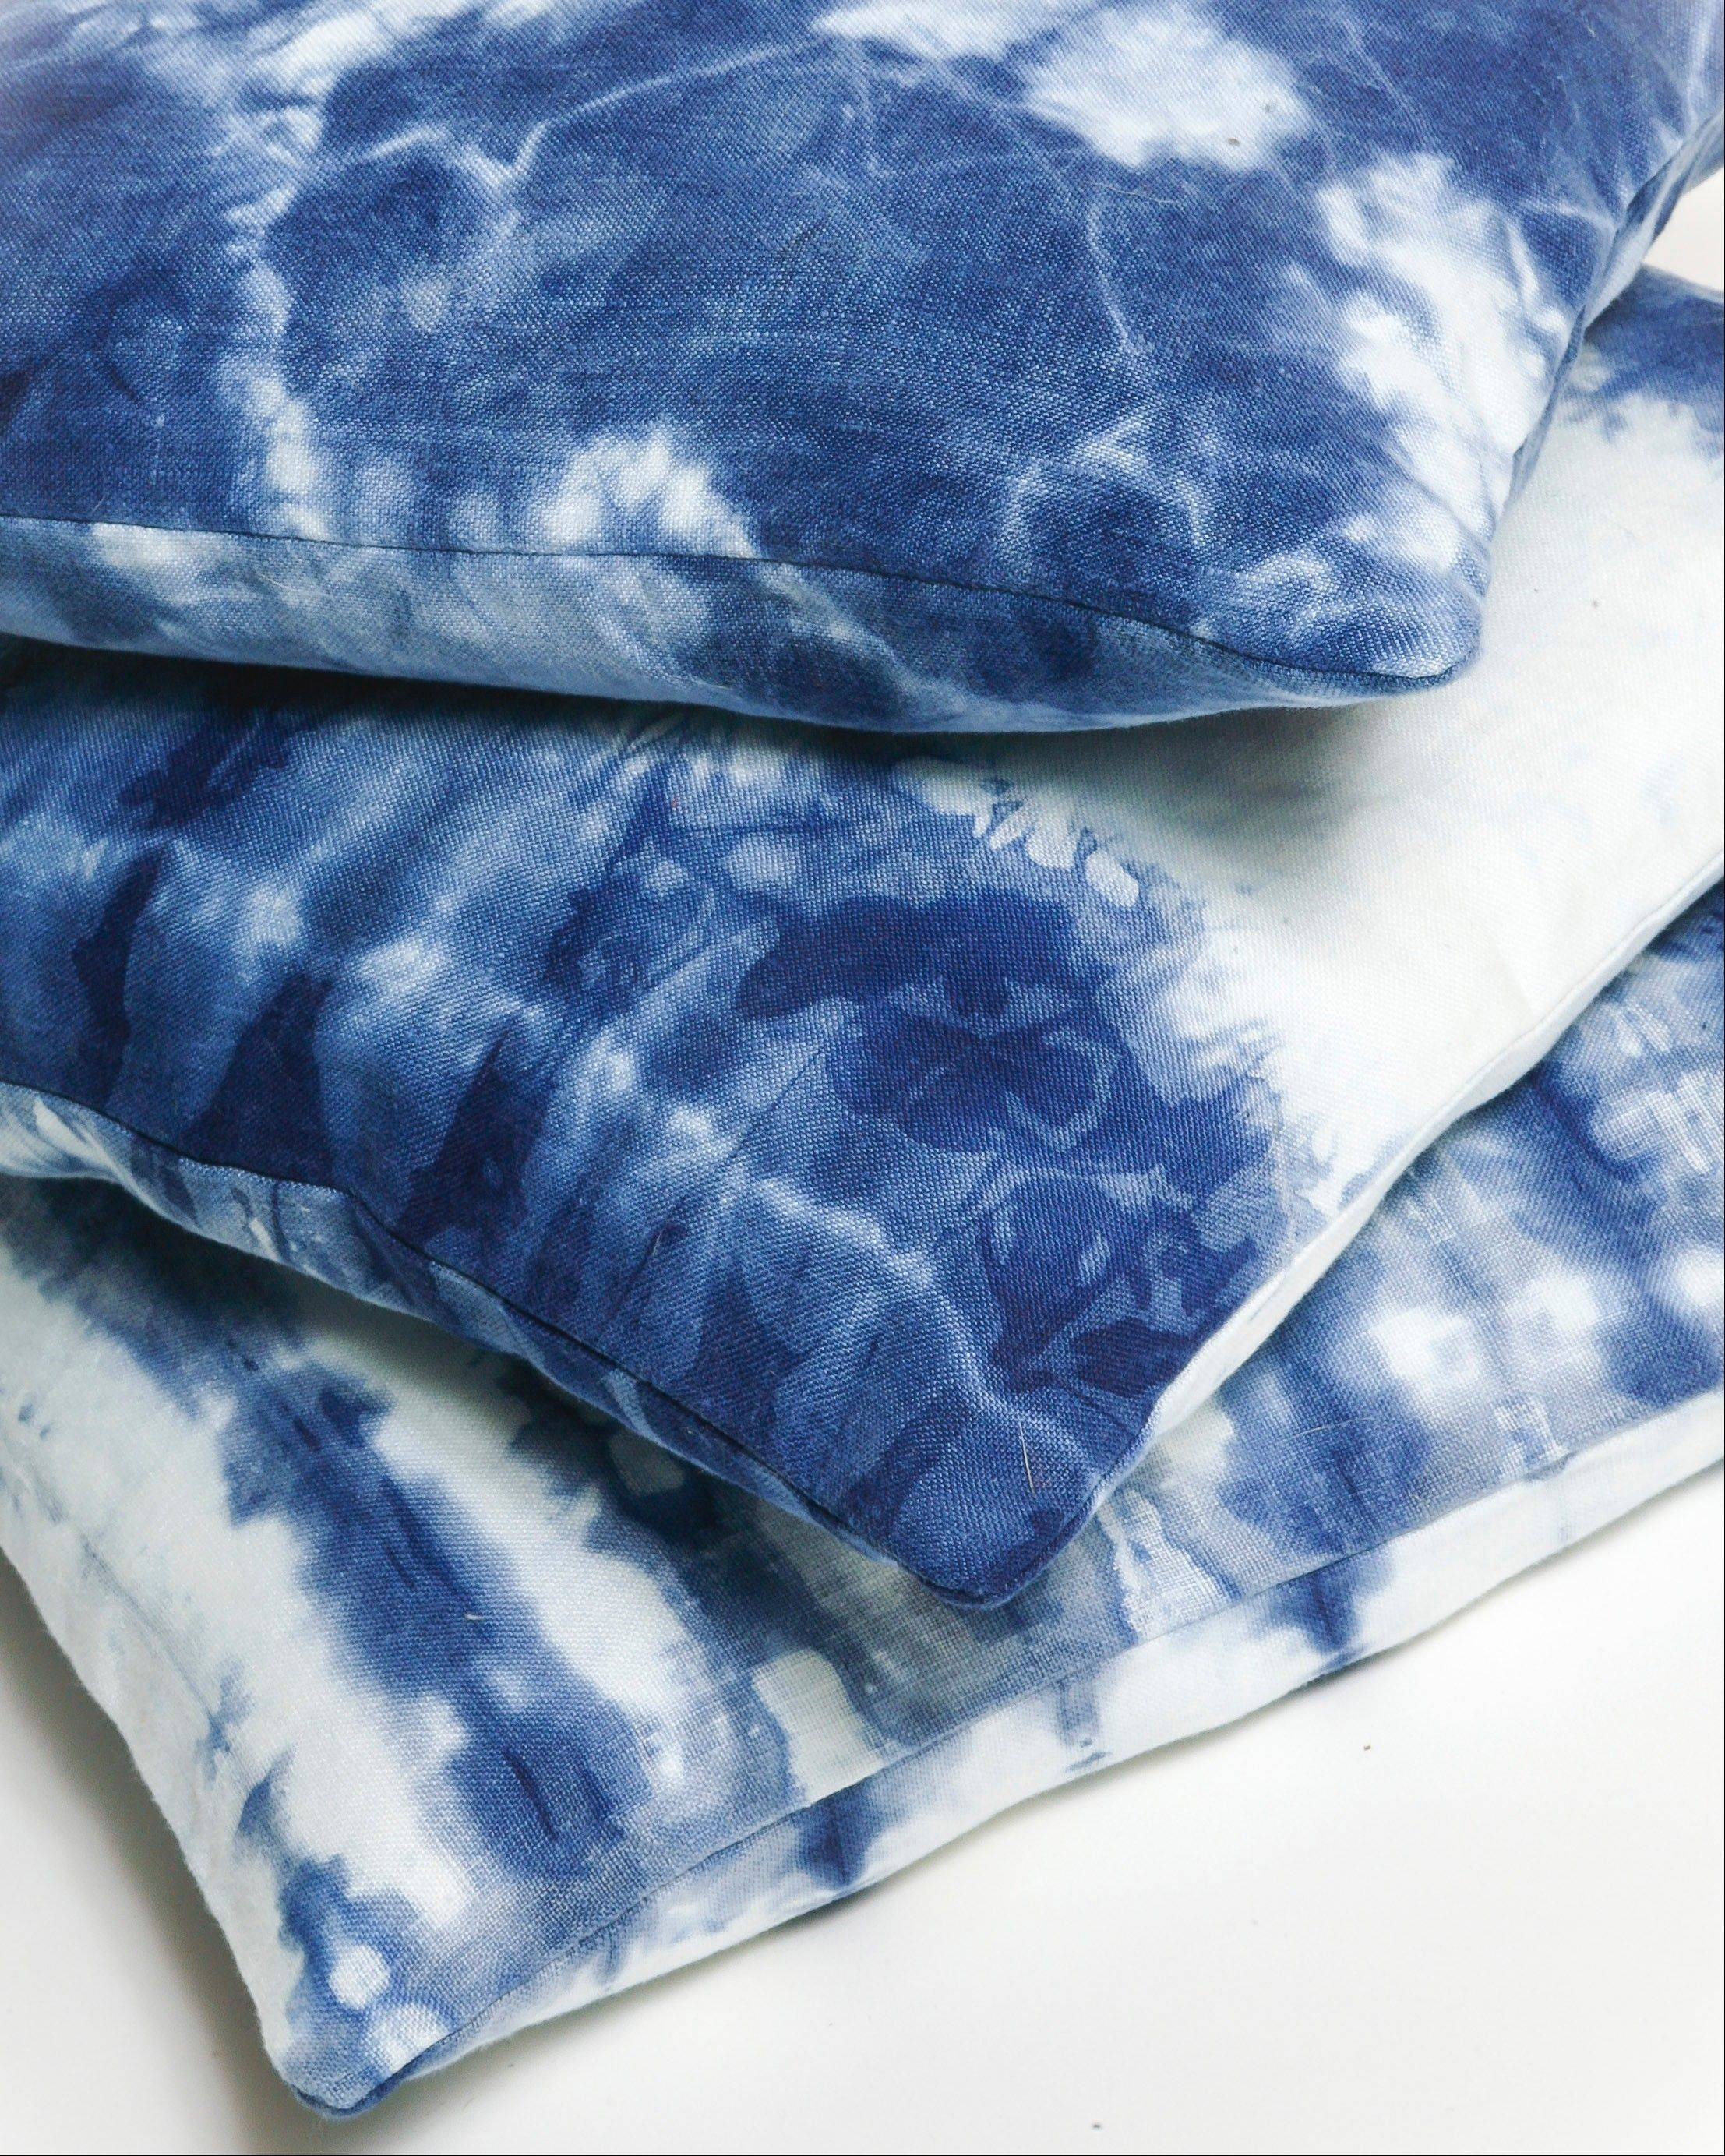 OriShibori pillows by Oriana DiNella, who recently launched her own Web-based shibori line, OriShibori.com. The line includes linen tableware, pillows and throws, and large leather wall hangings. They are all made to order and hand-dyed in organic indigo.